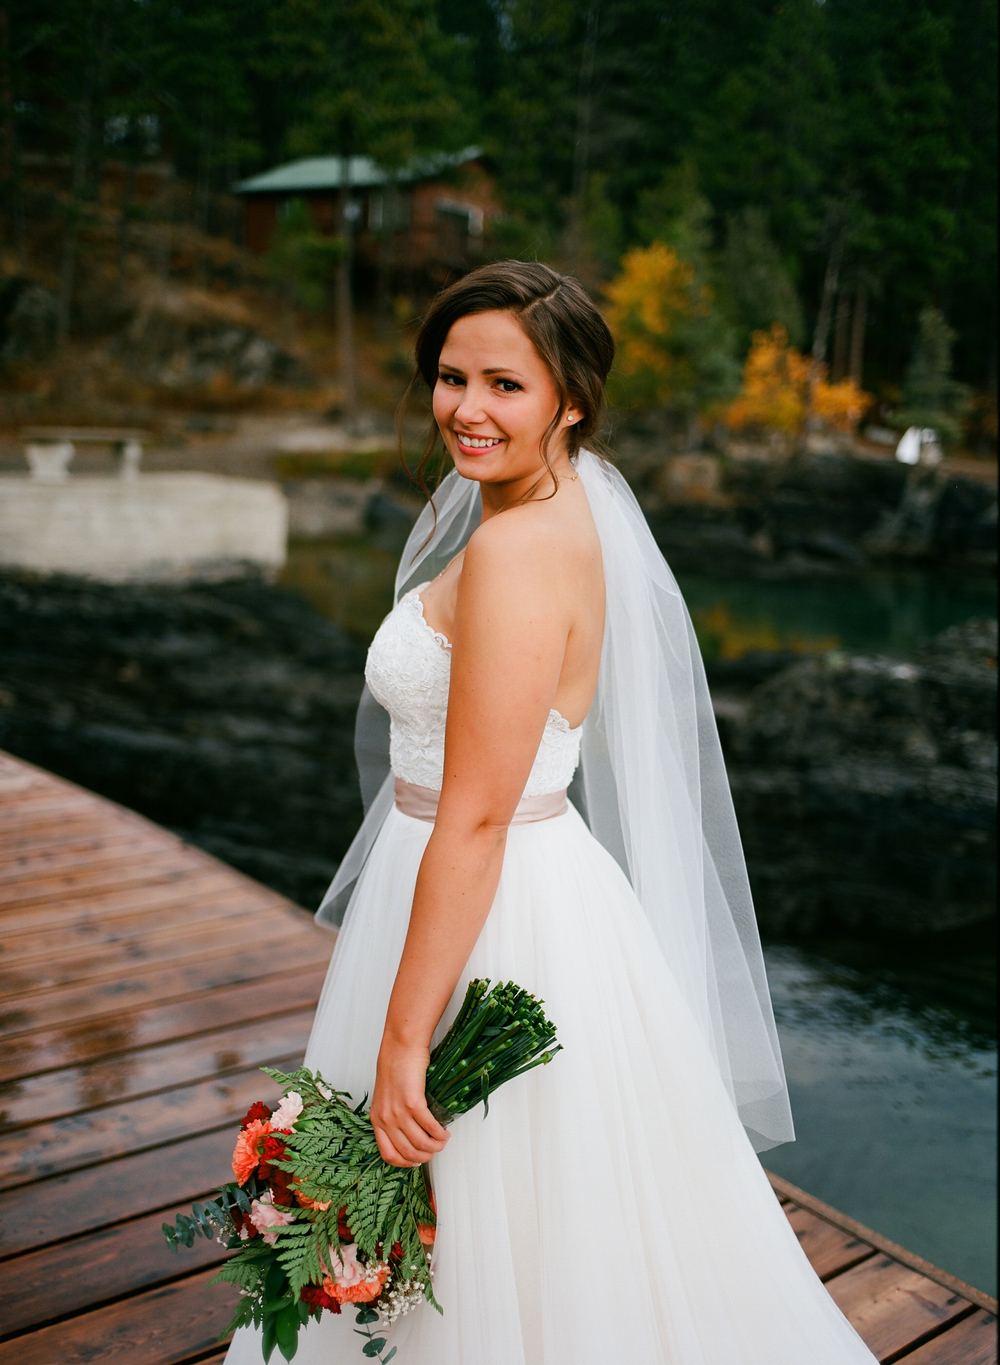 Brooke Bynum and Zach Jaszczak's Montana Wedding-73.jpg